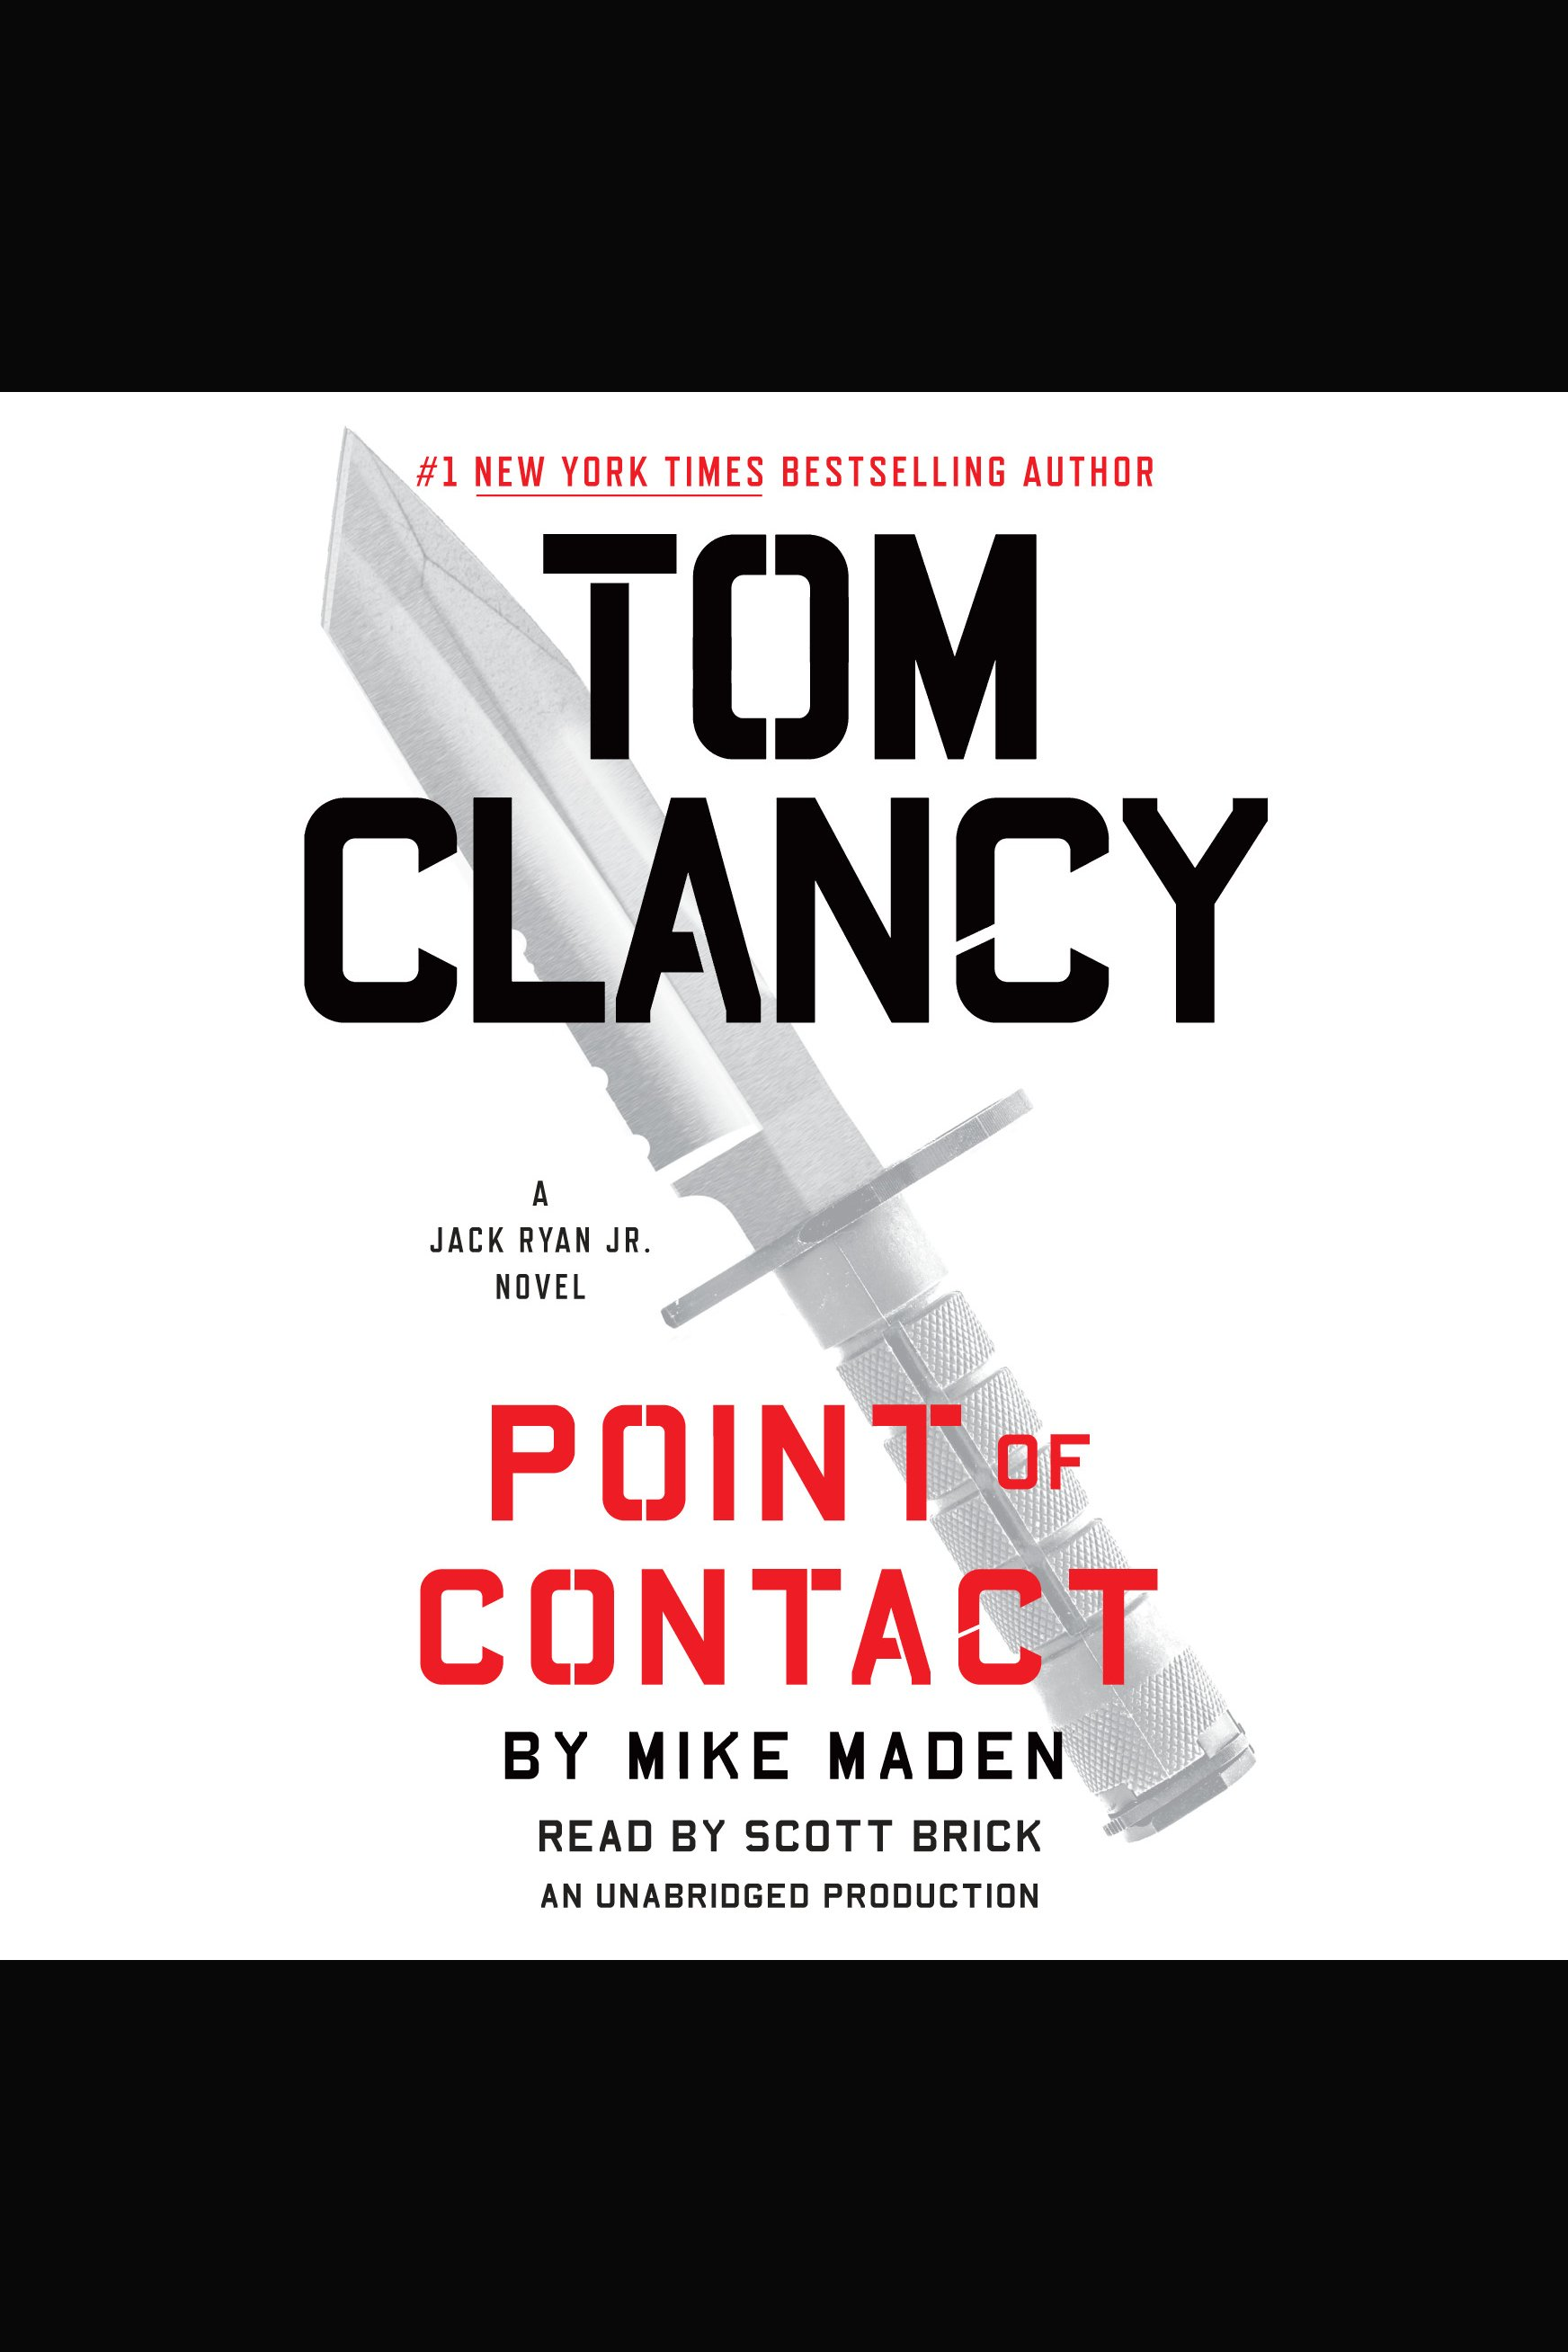 Tom Clancy point of contact cover image